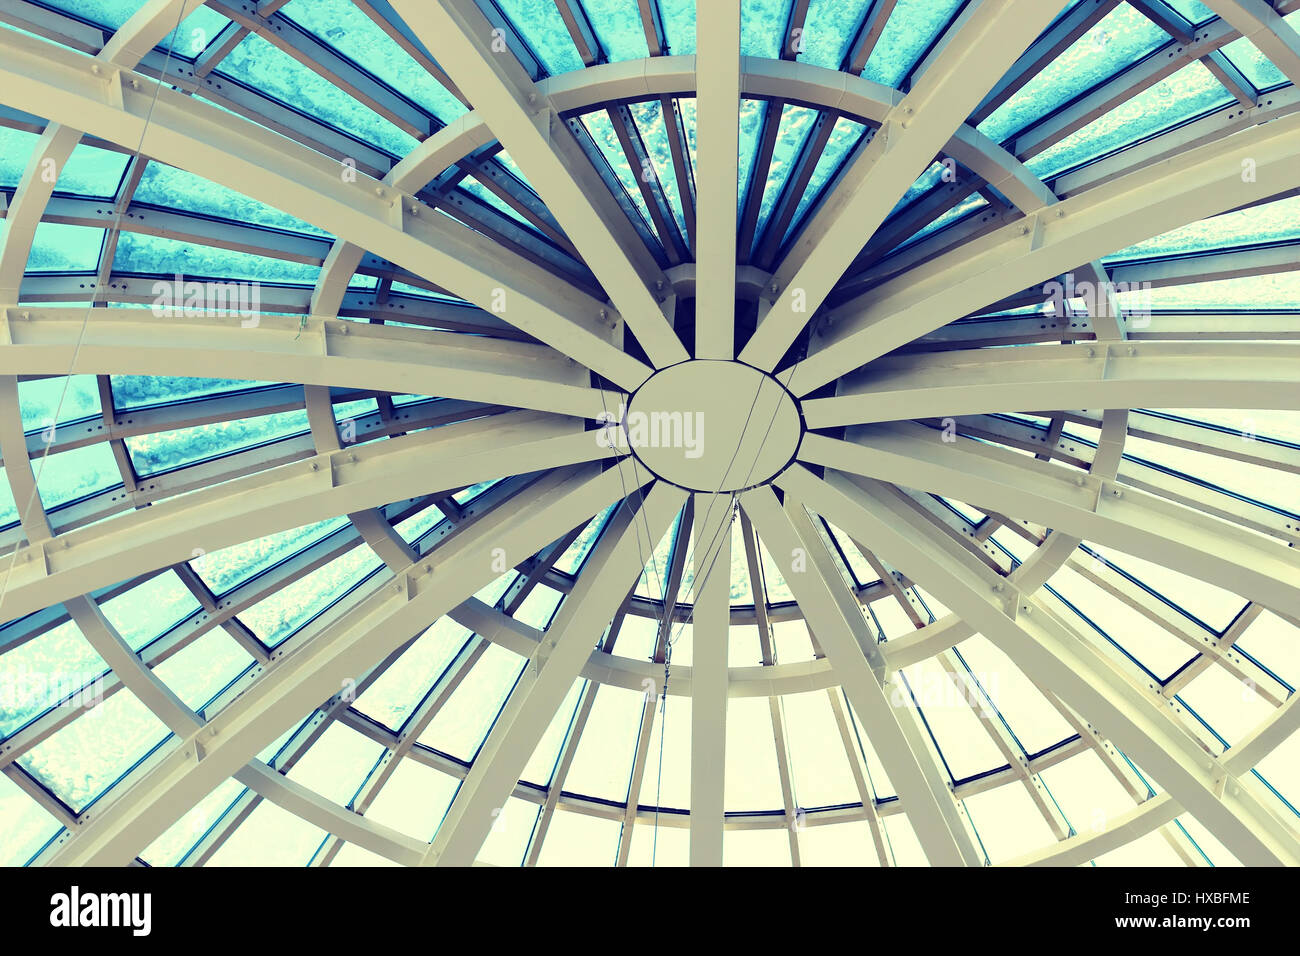 glass construction roof winter - Stock Image